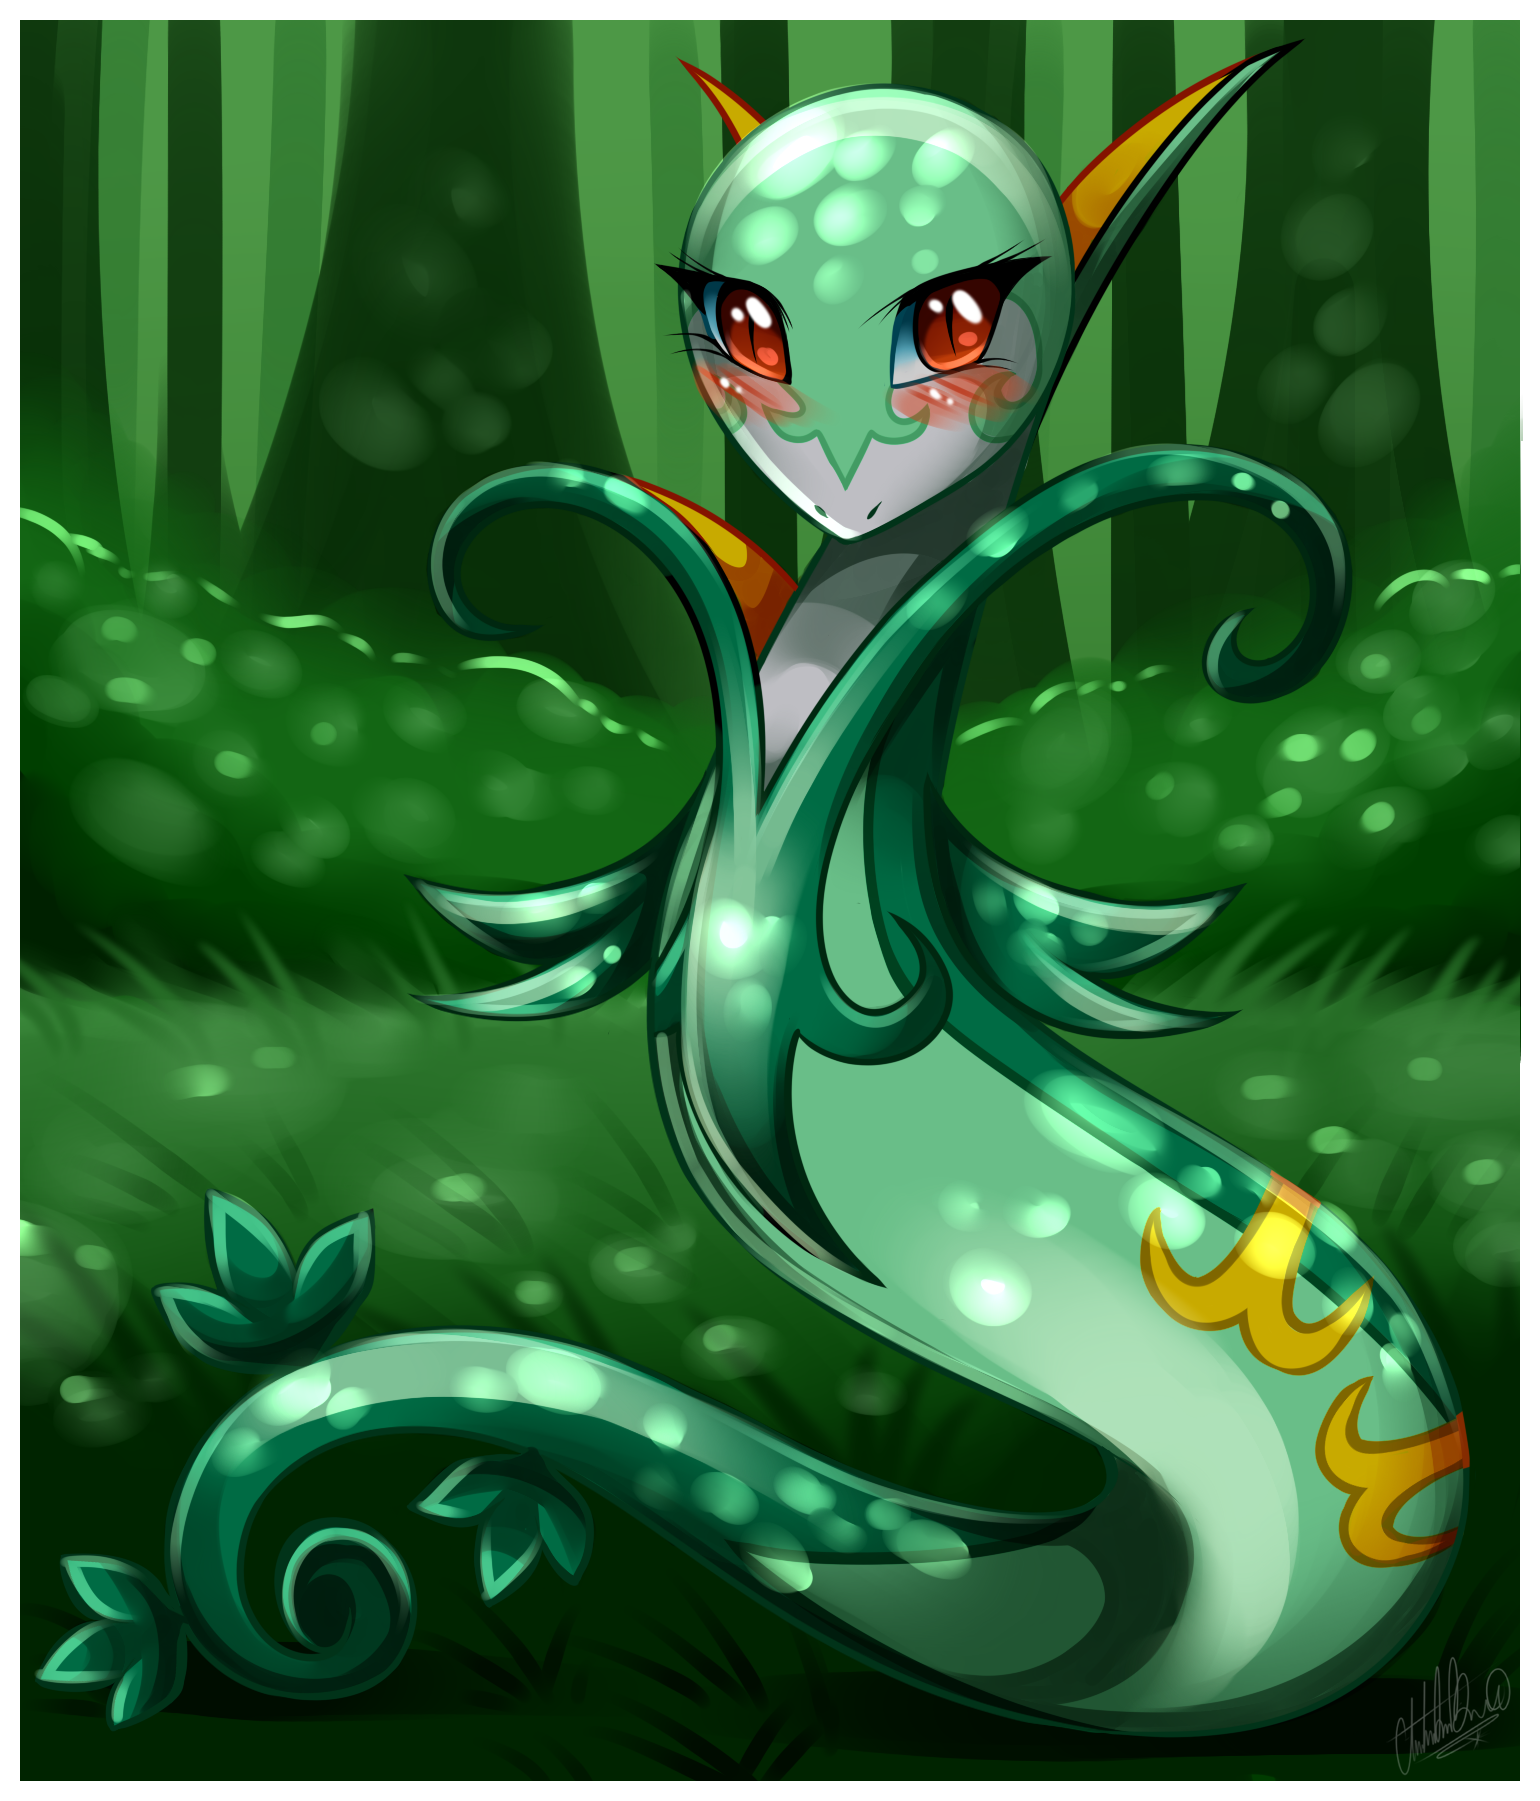 Pokemon- Serperior by Sweetochii on DeviantArt